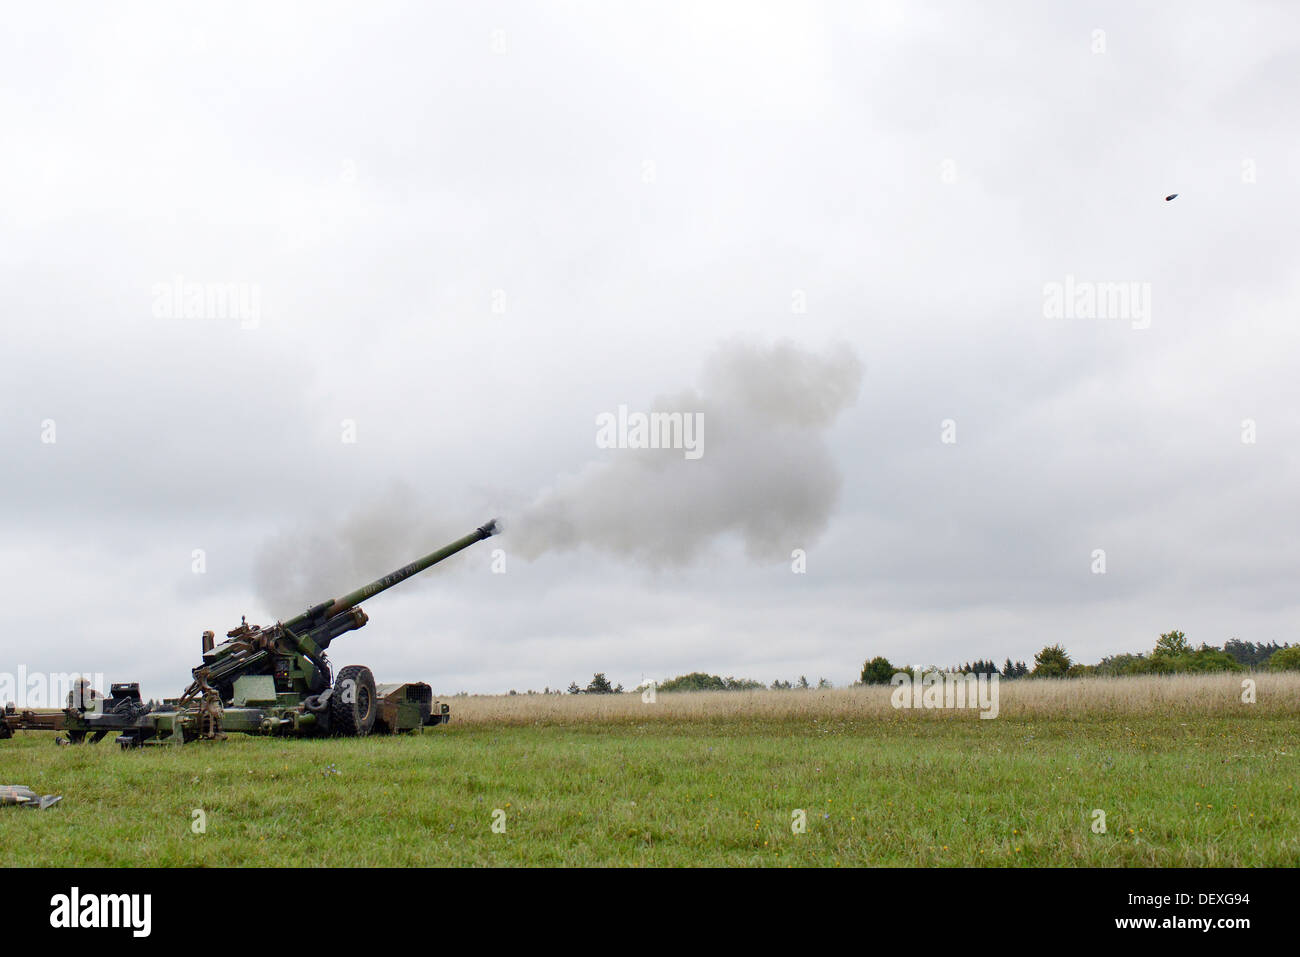 French soldiers fire a French TRF1 155 mm self-propelled howitzer as part of a live fire exercise during Combined Endeavor at the Joint Multinational Training Command's Grafenwoehr Training Area, Germany, Sept. 17, 2013. Combined Endeavor is an annual com - Stock Image